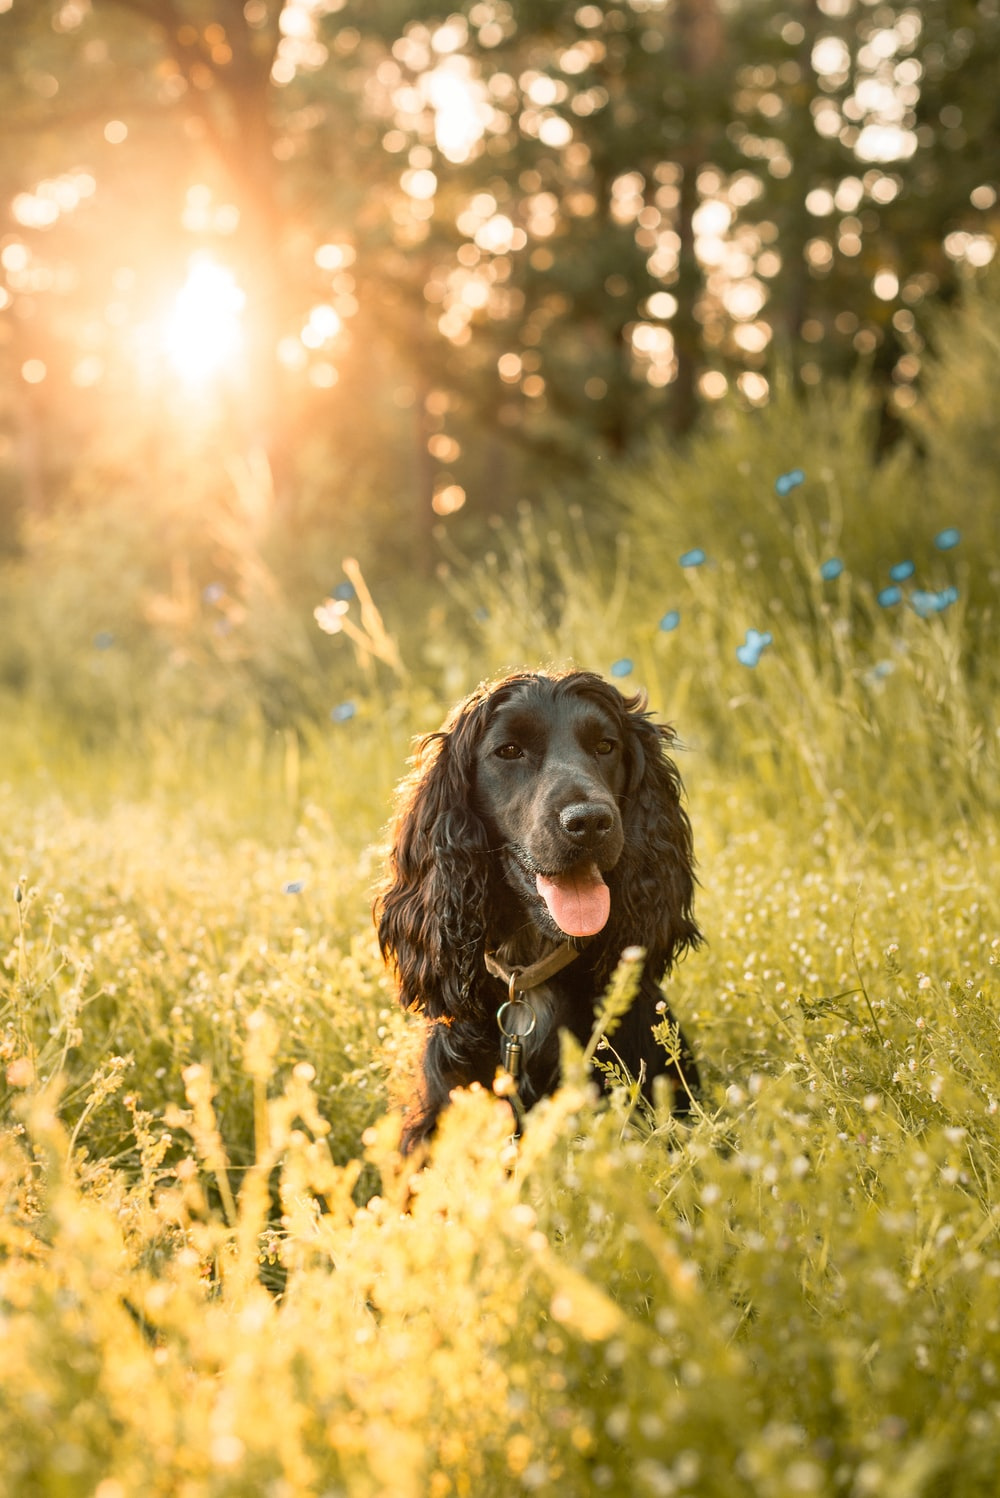 black and brown short coated dog sitting on yellow flower field during daytime